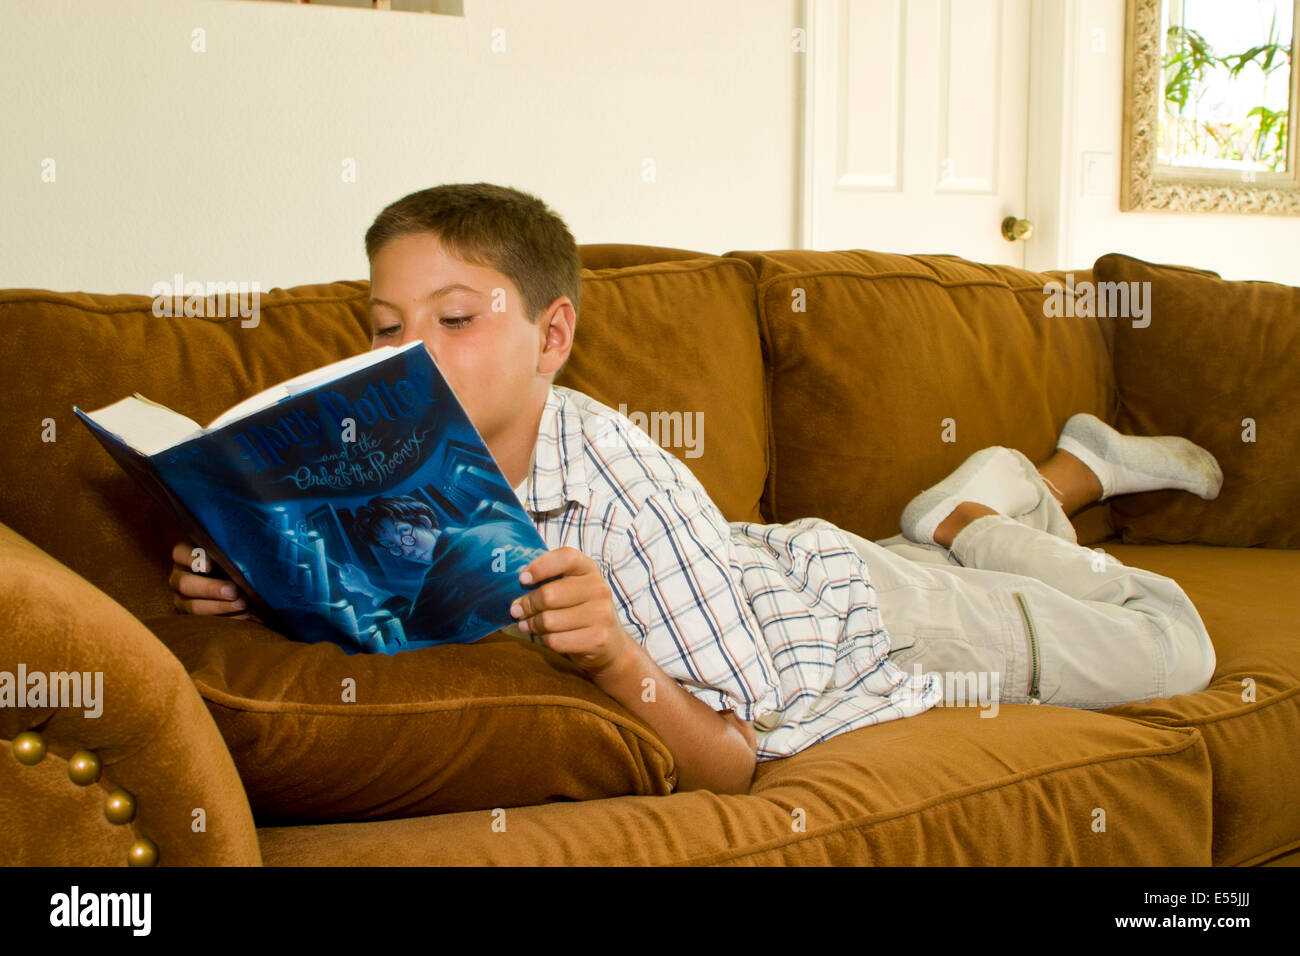 Young Japanese/Caucasian boy reading Book MR © Myrleen Pearson - Stock Image